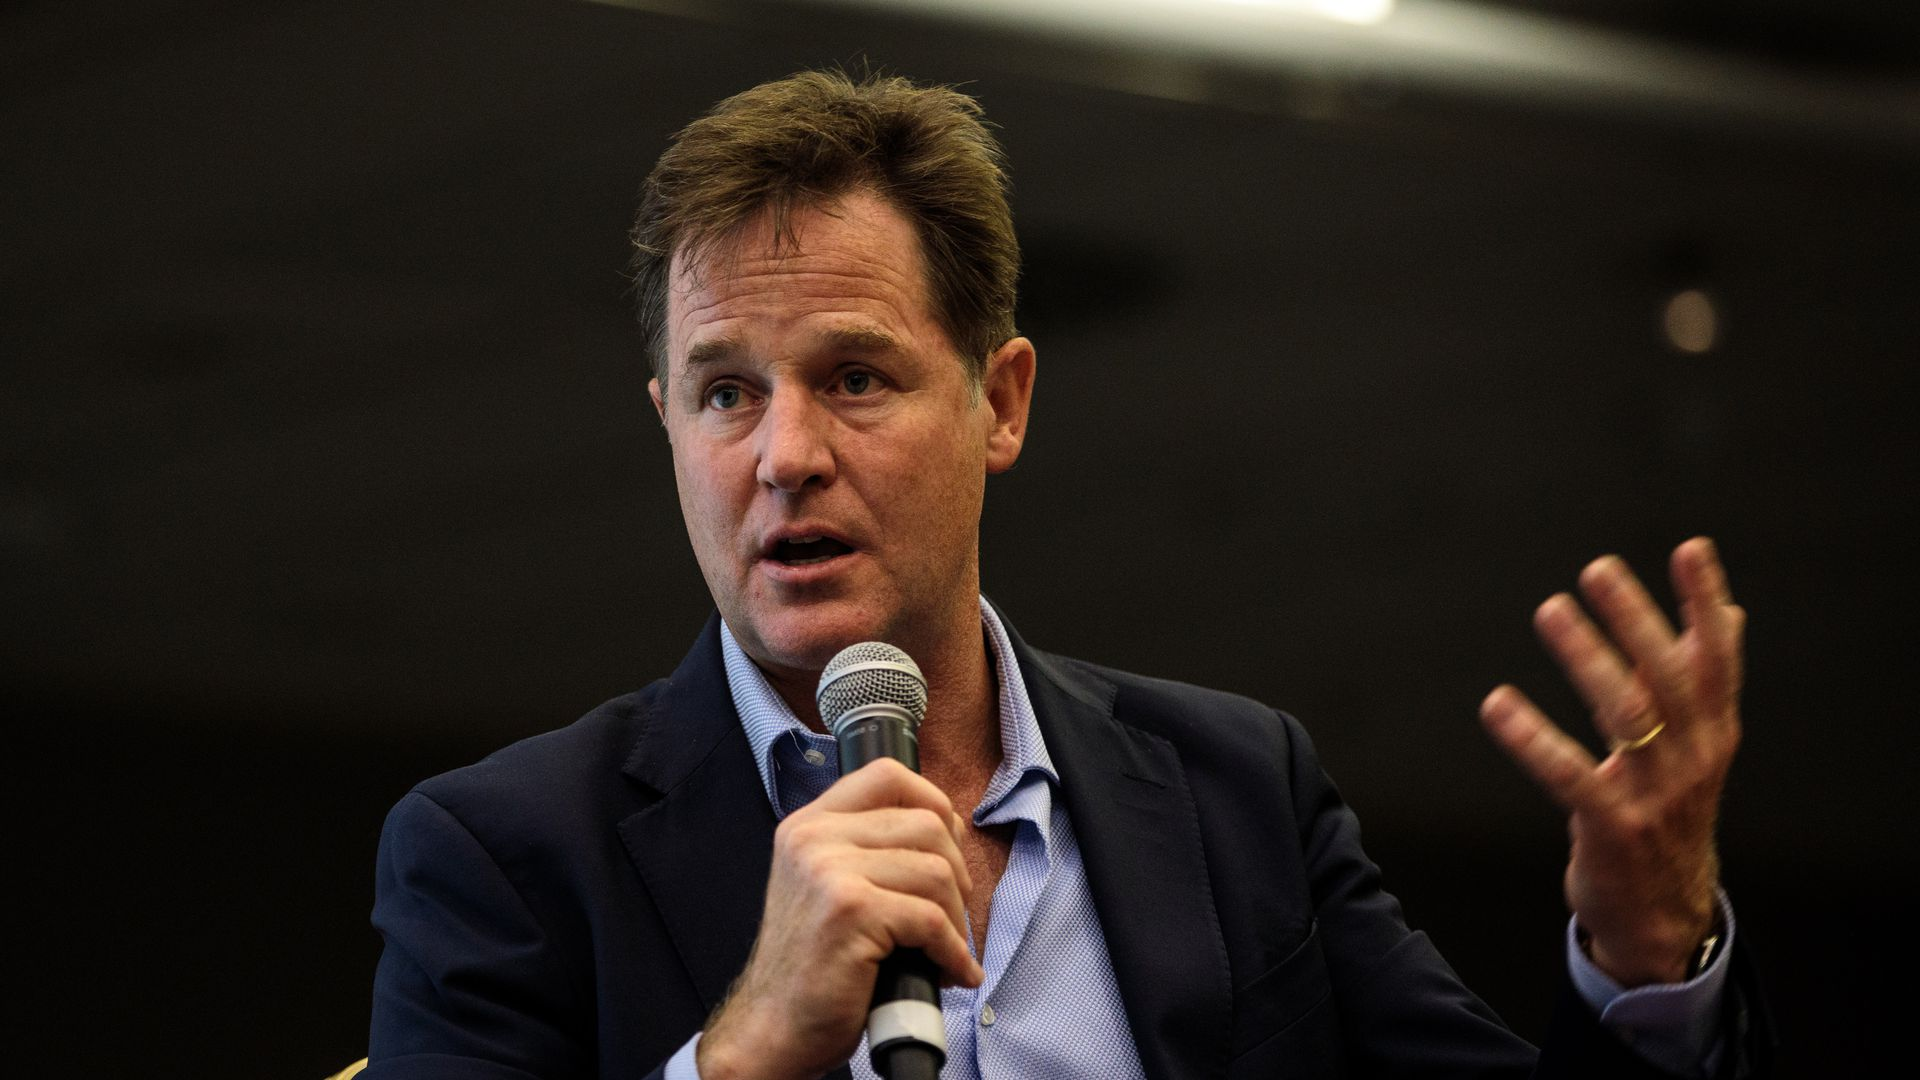 Nick Clegg speaking into a microphone.